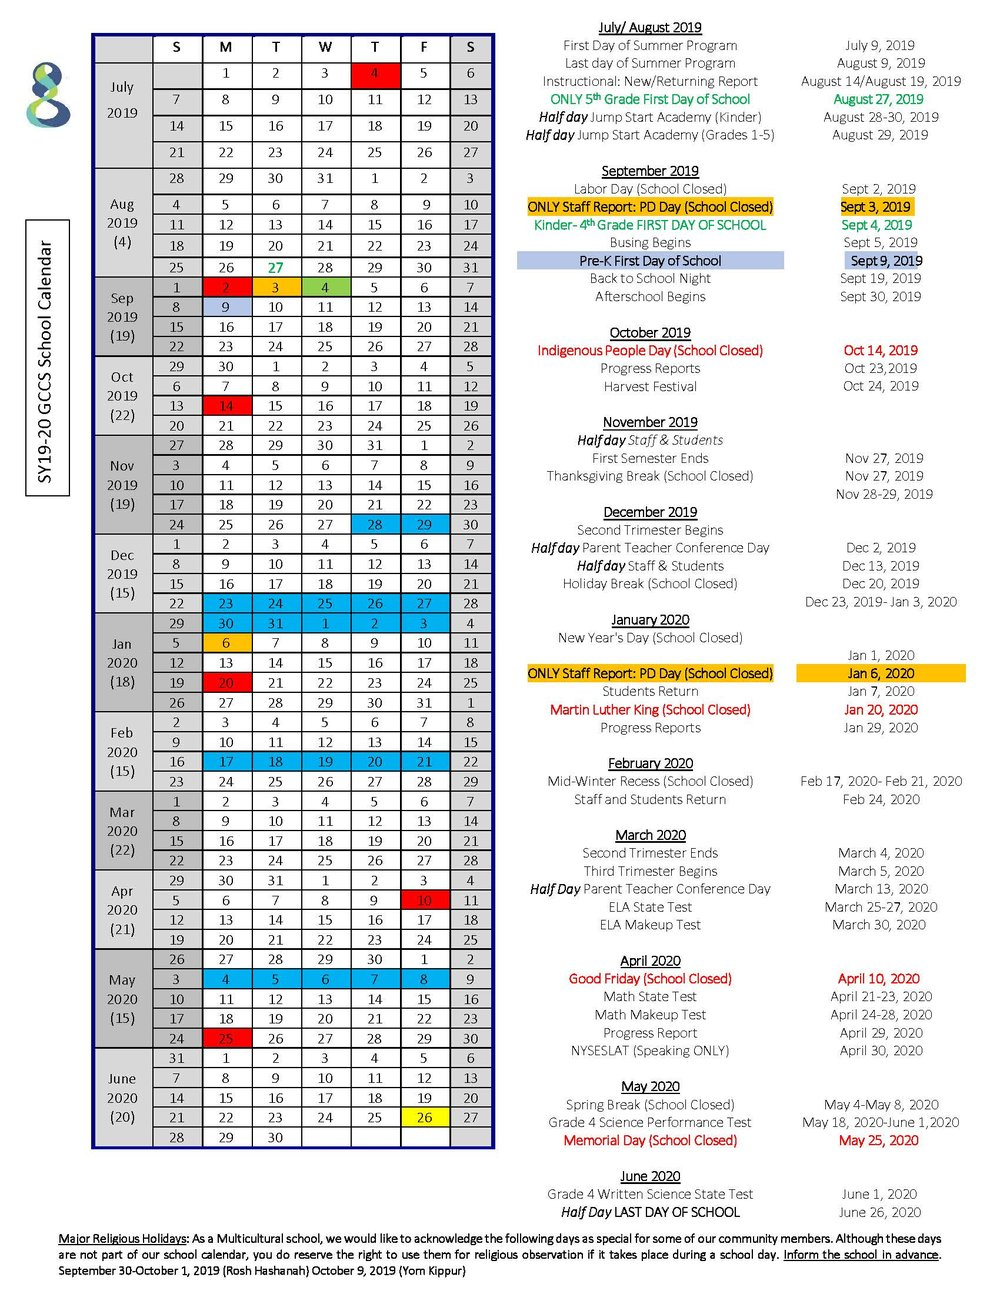 2019 20 School Calendar — Global Community Charter School Regarding Academic Calender For Middlesex County College For 2021